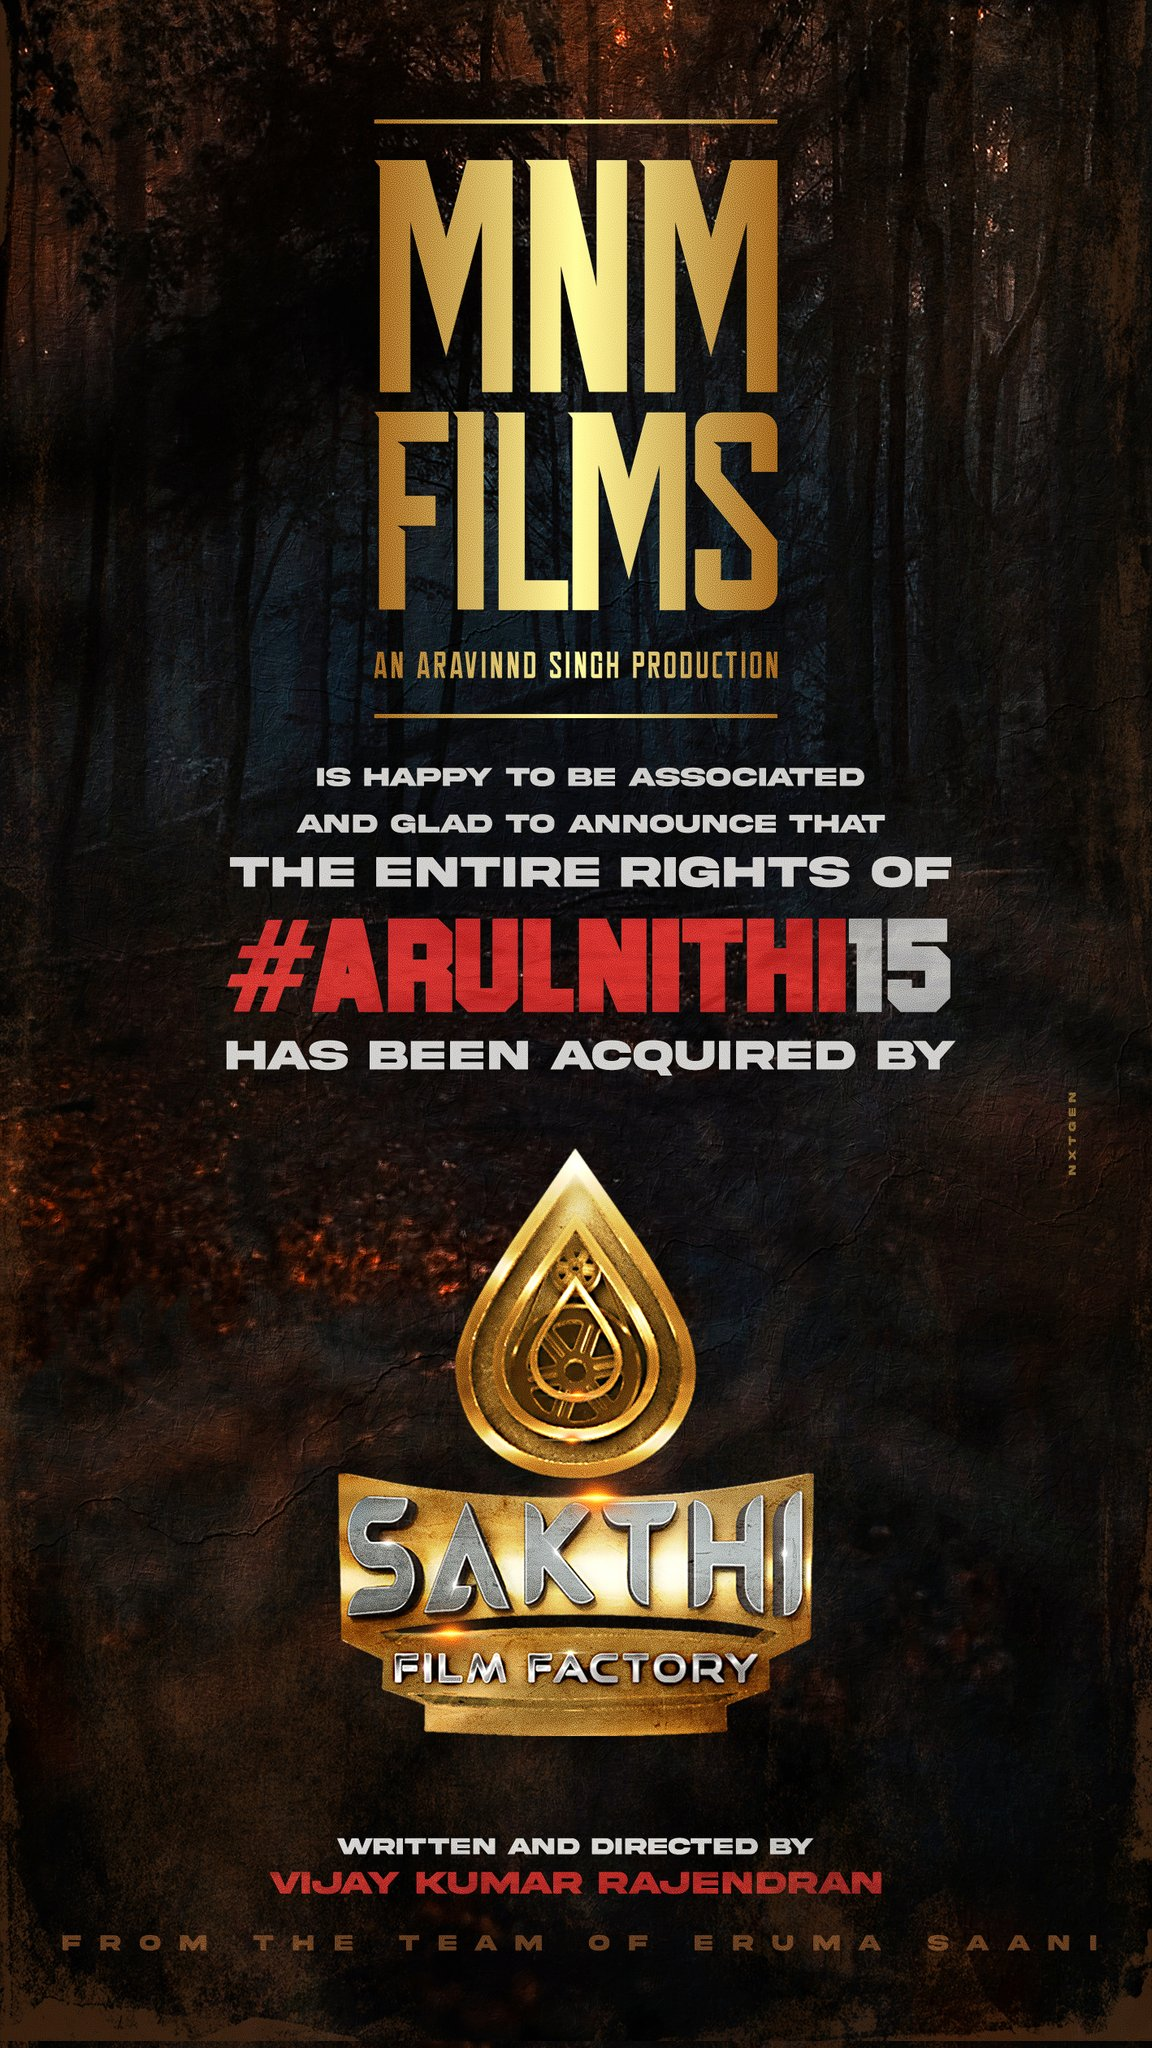 Sakthi Film Factory B. Sakthivelan acquired the complete rights of Arulnithi15 directed by Vijay Kumar Rajendran Produced by MNM Films Aravinnd Singh